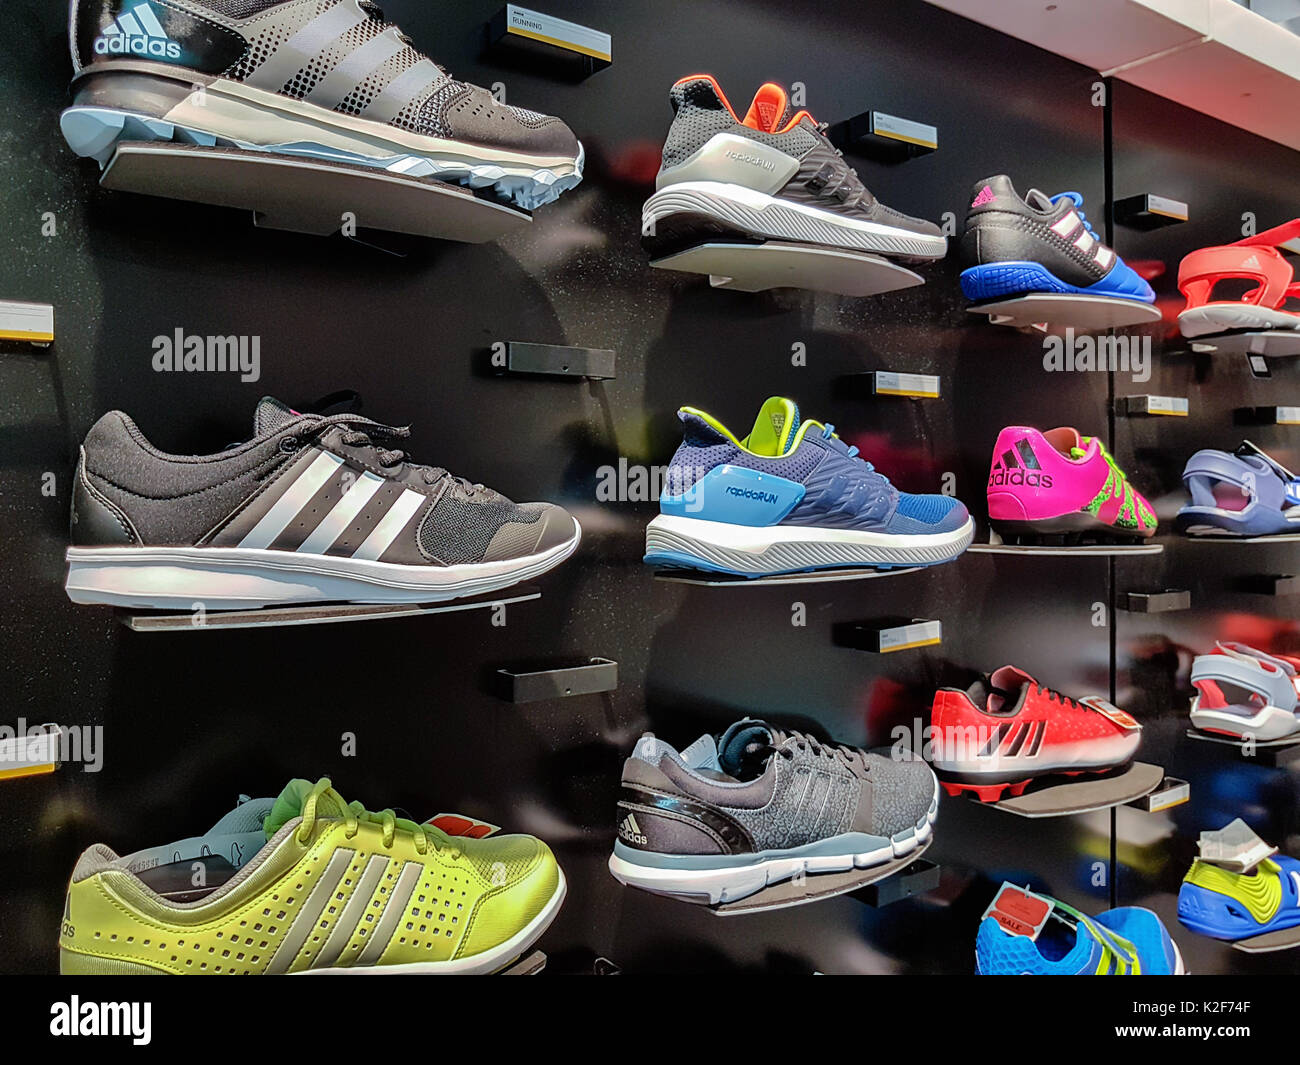 Nowy Sacz, Poland - August 12, 2017: Collection of trendy Adidas sports  shoes